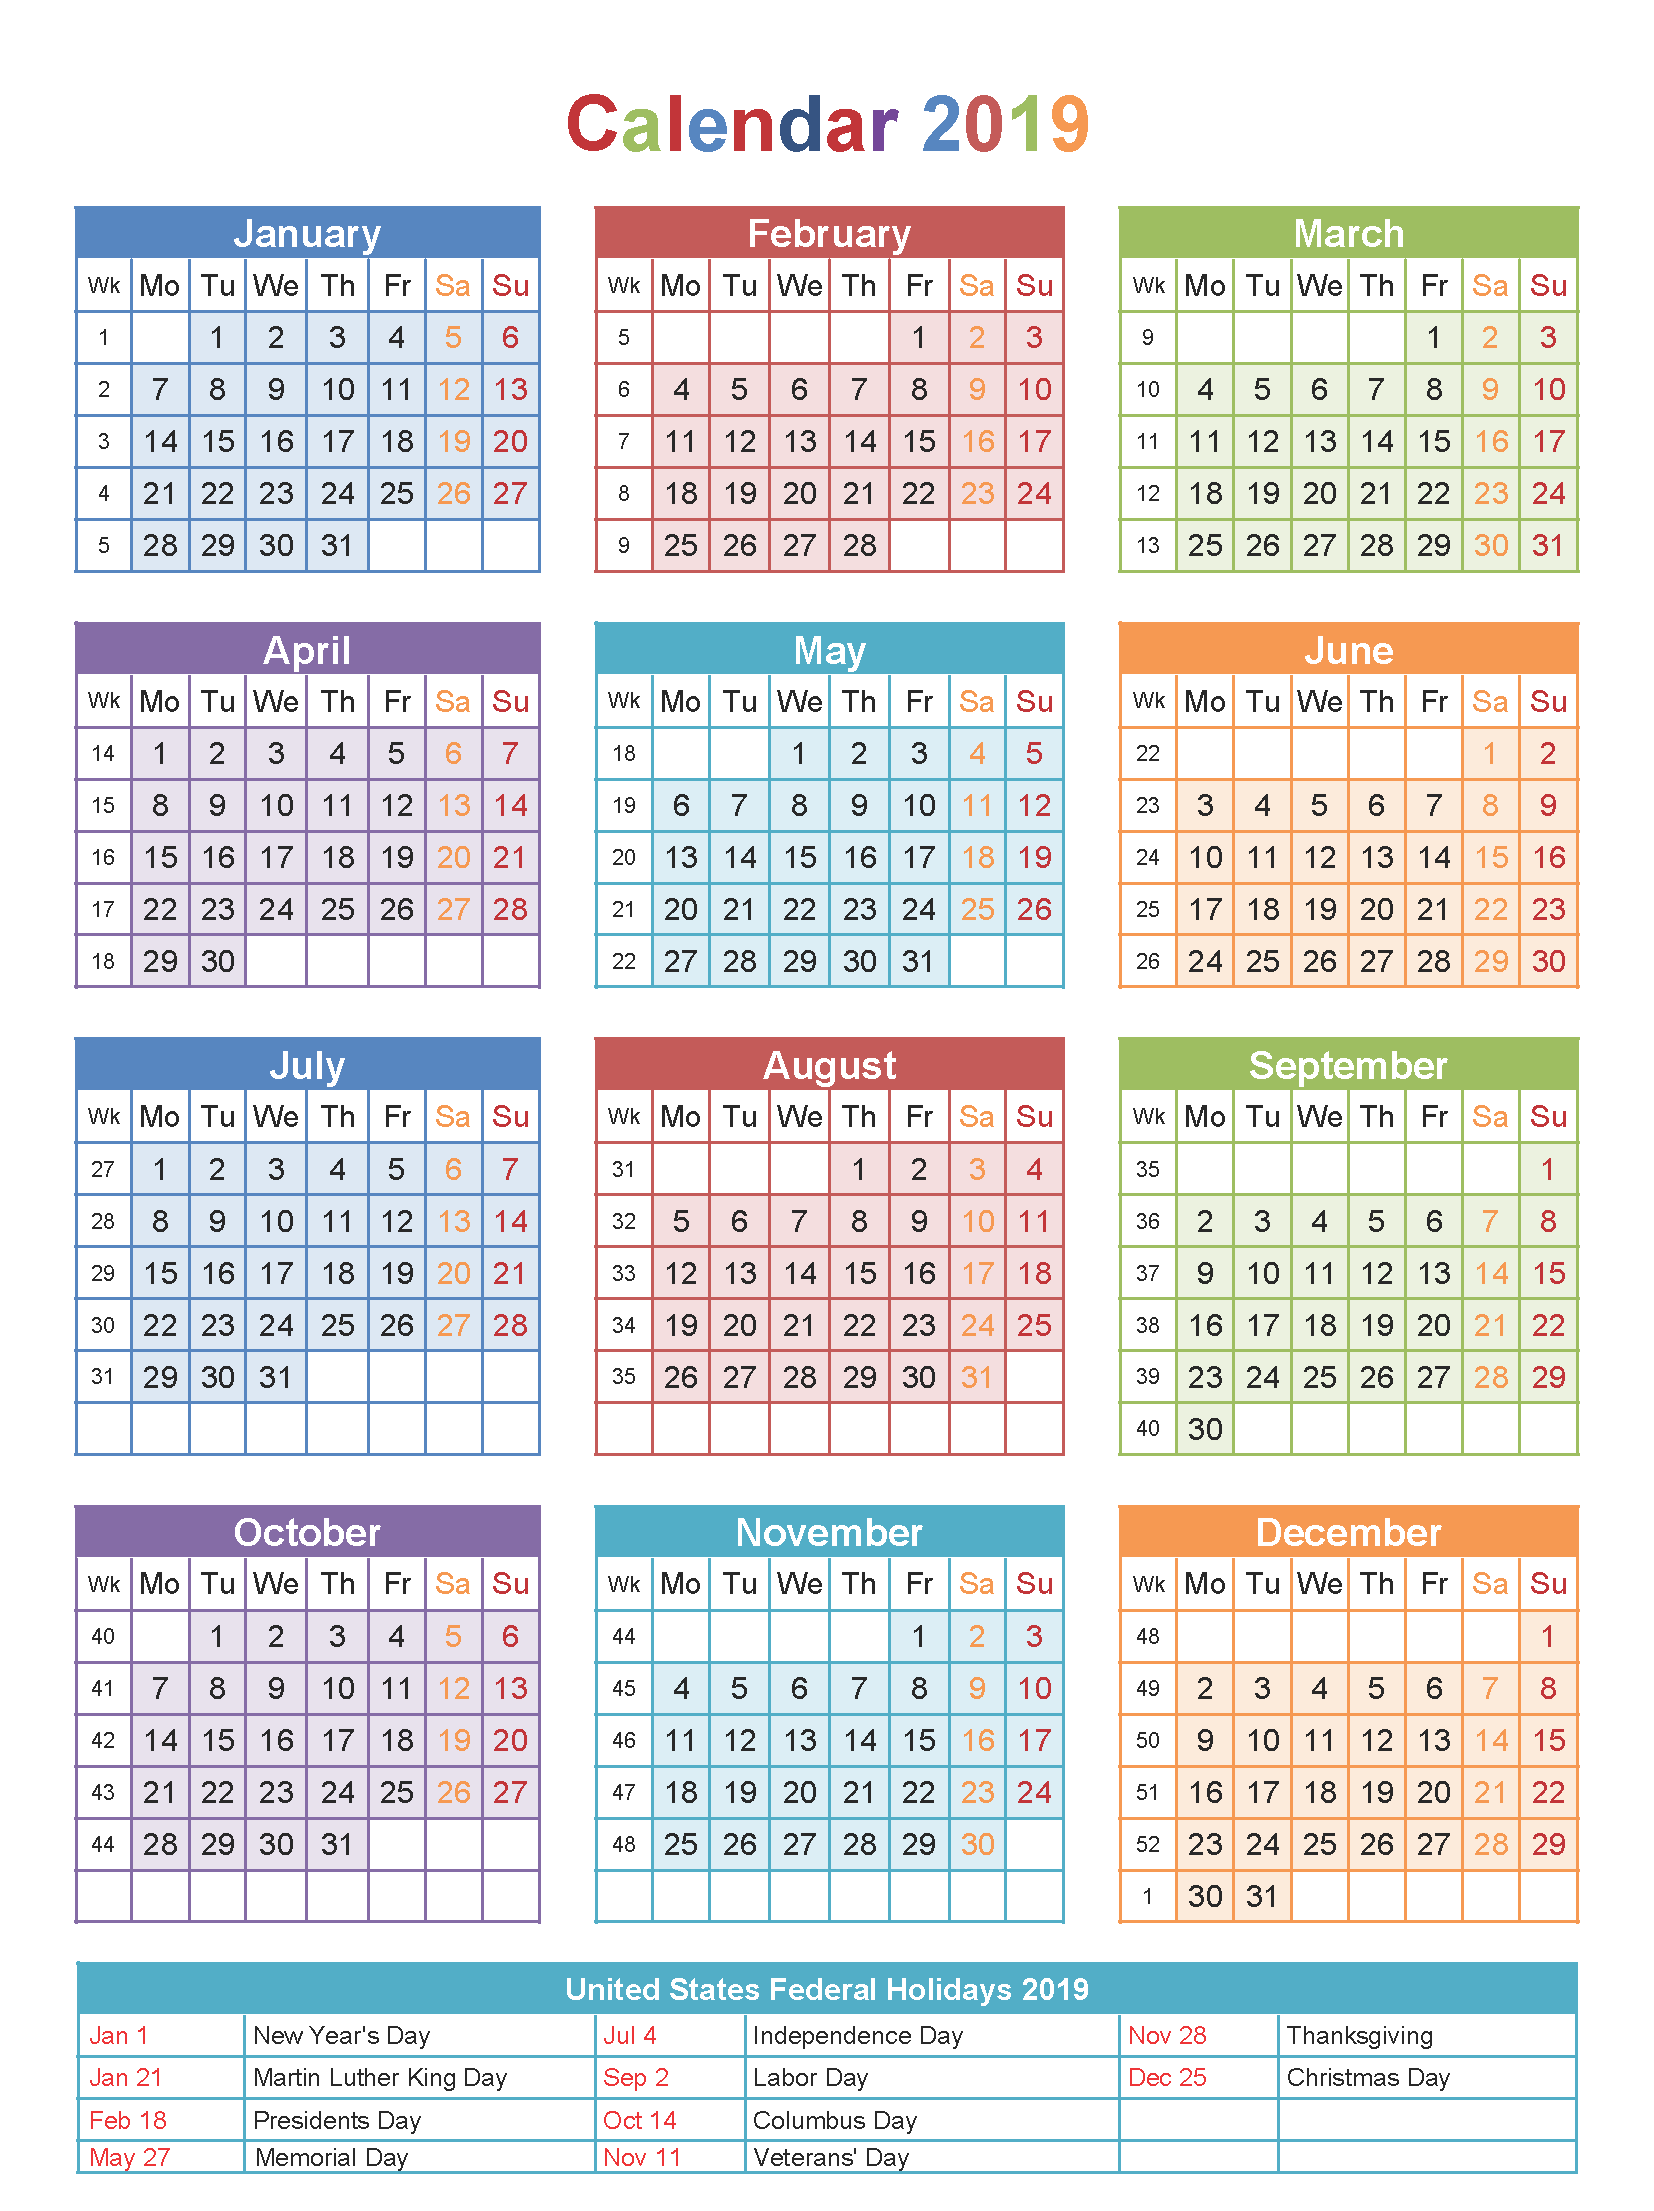 Year 2019 Calendar India With Holidays And Festivals Pdf Hype Journey